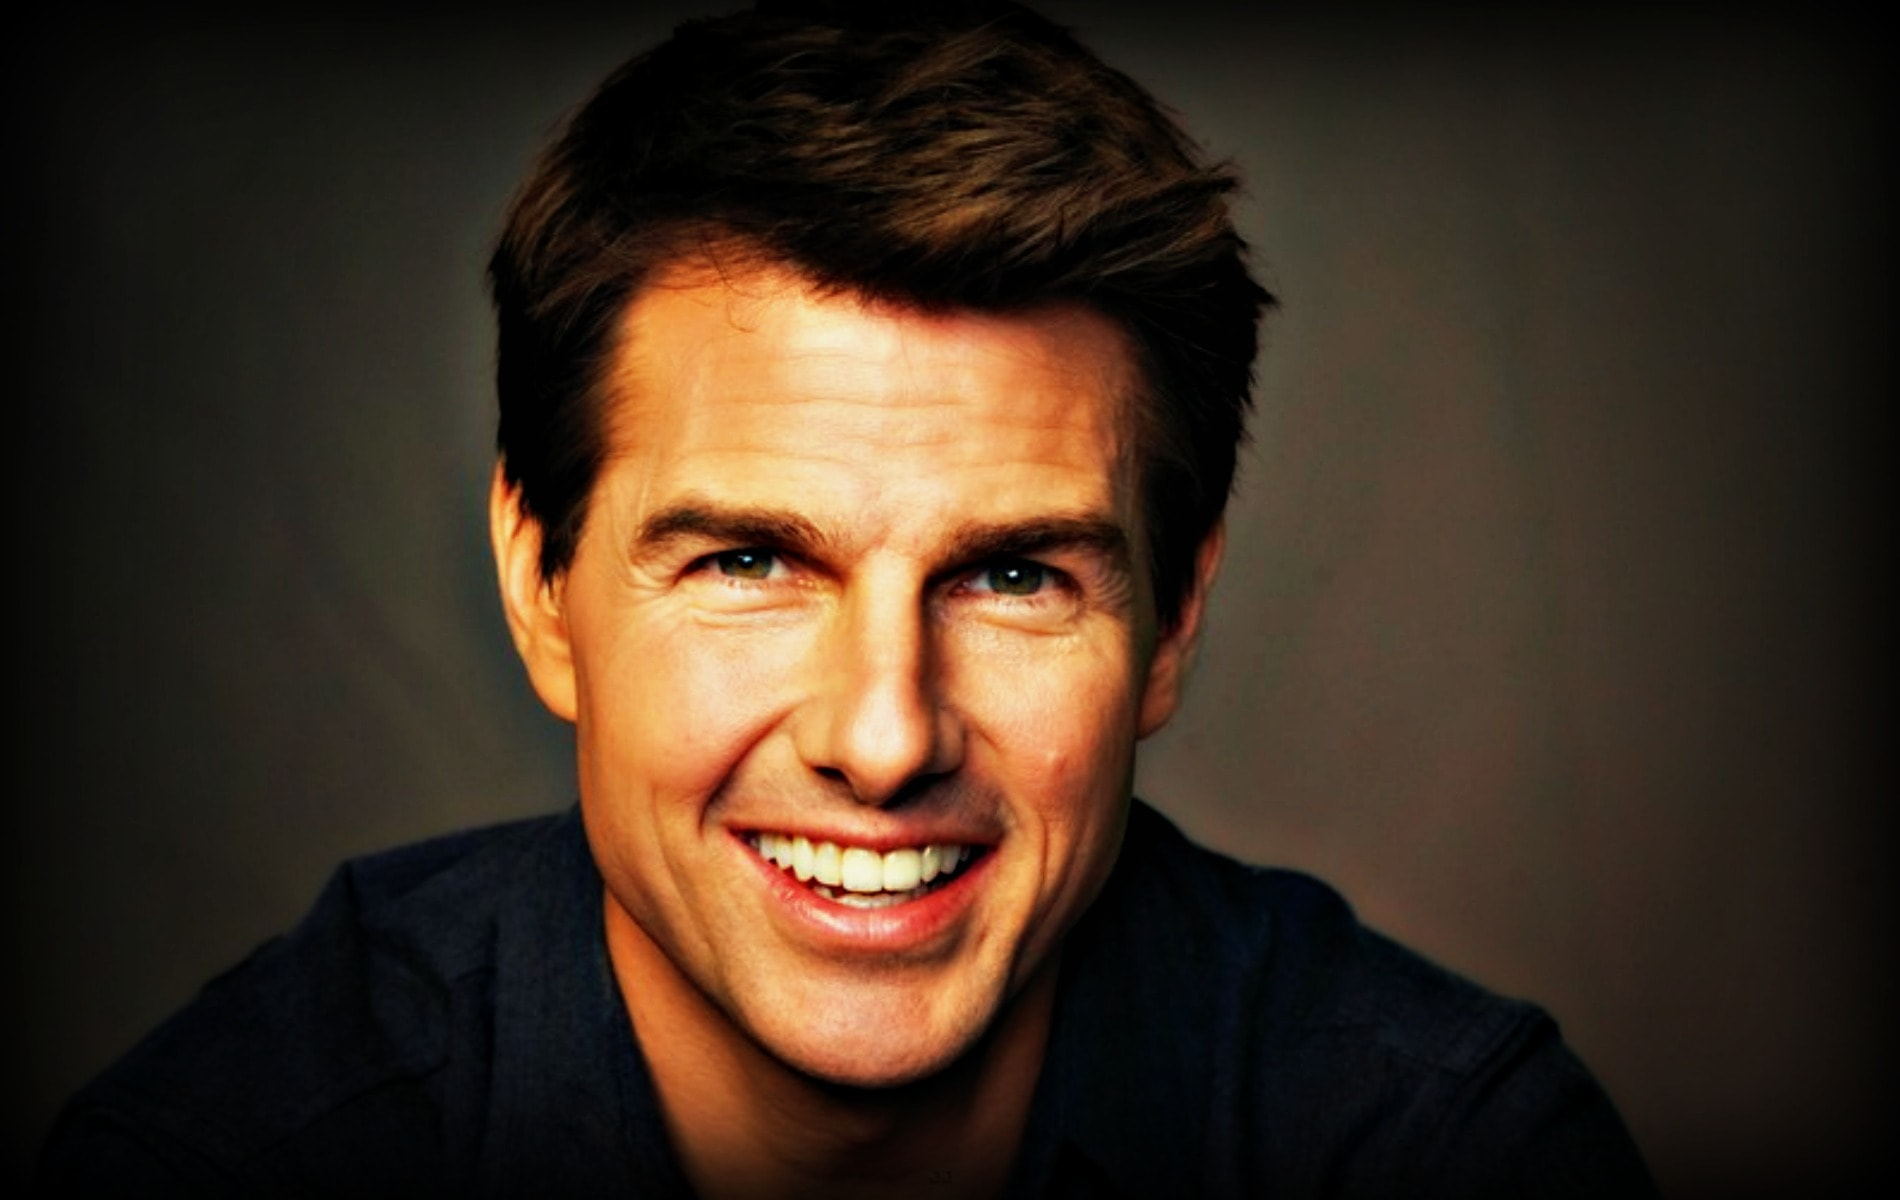 Tom Cruise HD Wallpapers 7wallpapersnet 1900x1200